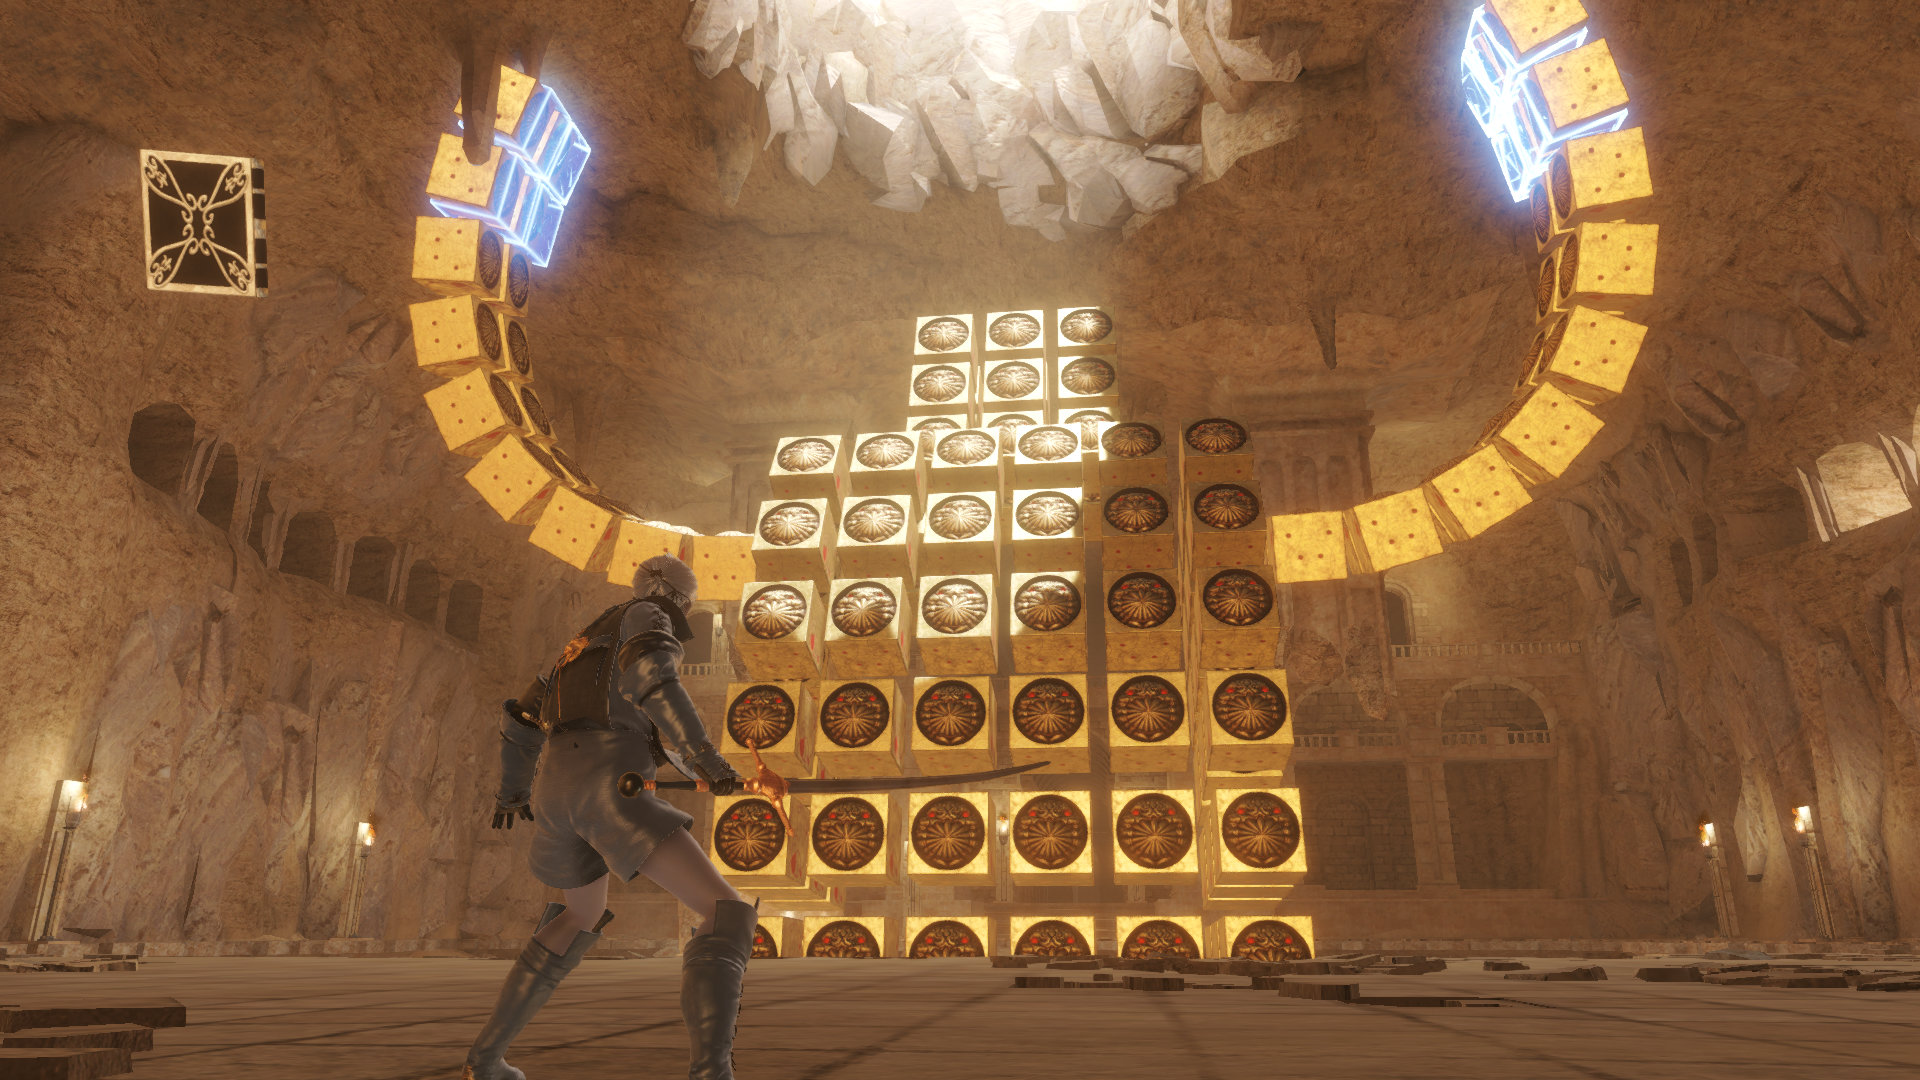 Nier fighting a boss made up of cubes in the Barren Temple in NieR Replicant ver.1.22474487139…